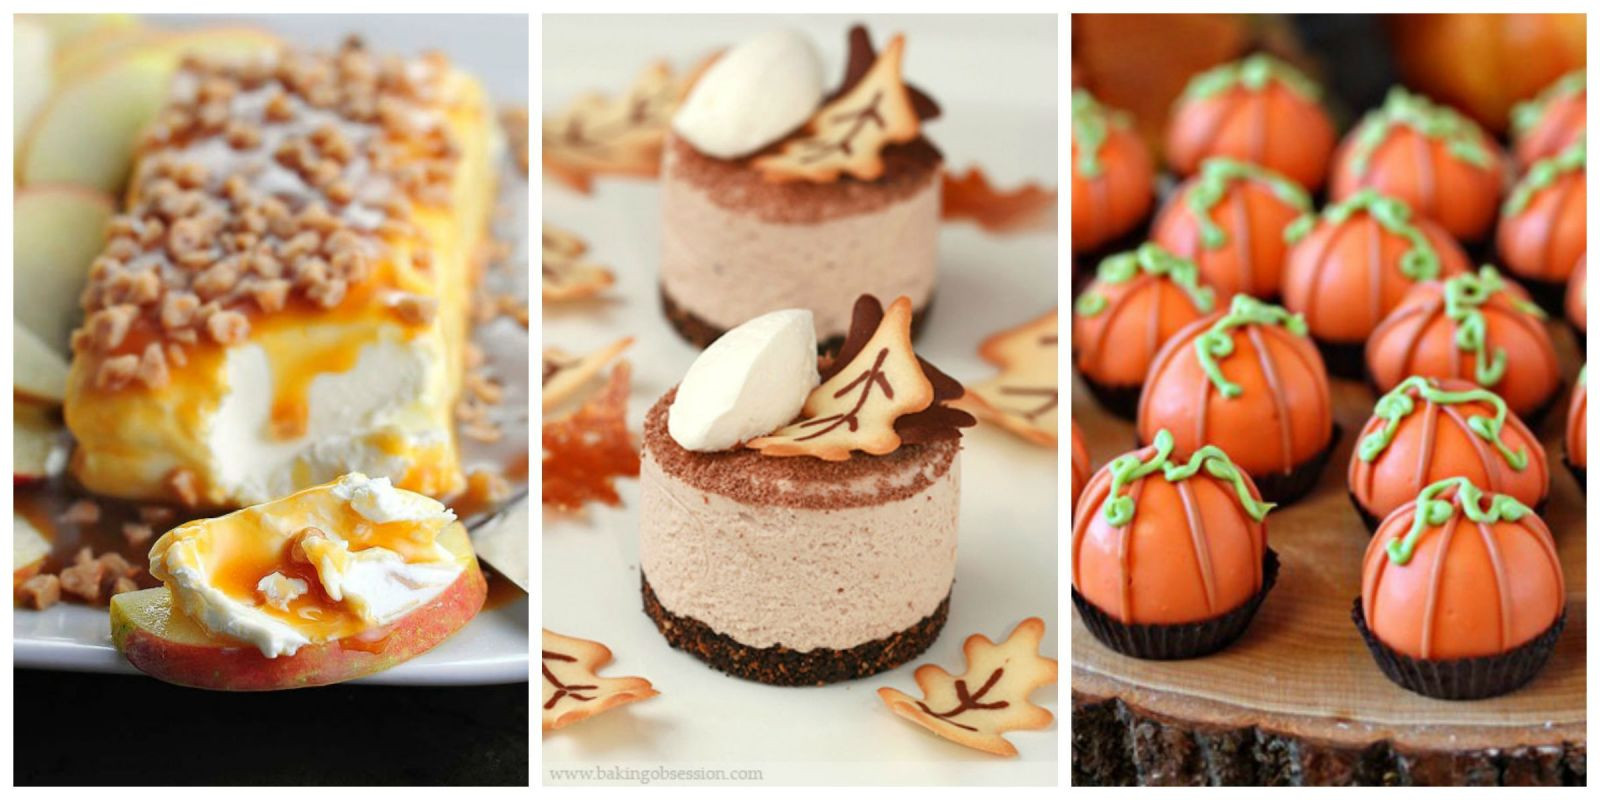 Fall Desserts For A Crowd  35 Easy Fall Dessert Recipes Best Treats for Autumn Parties